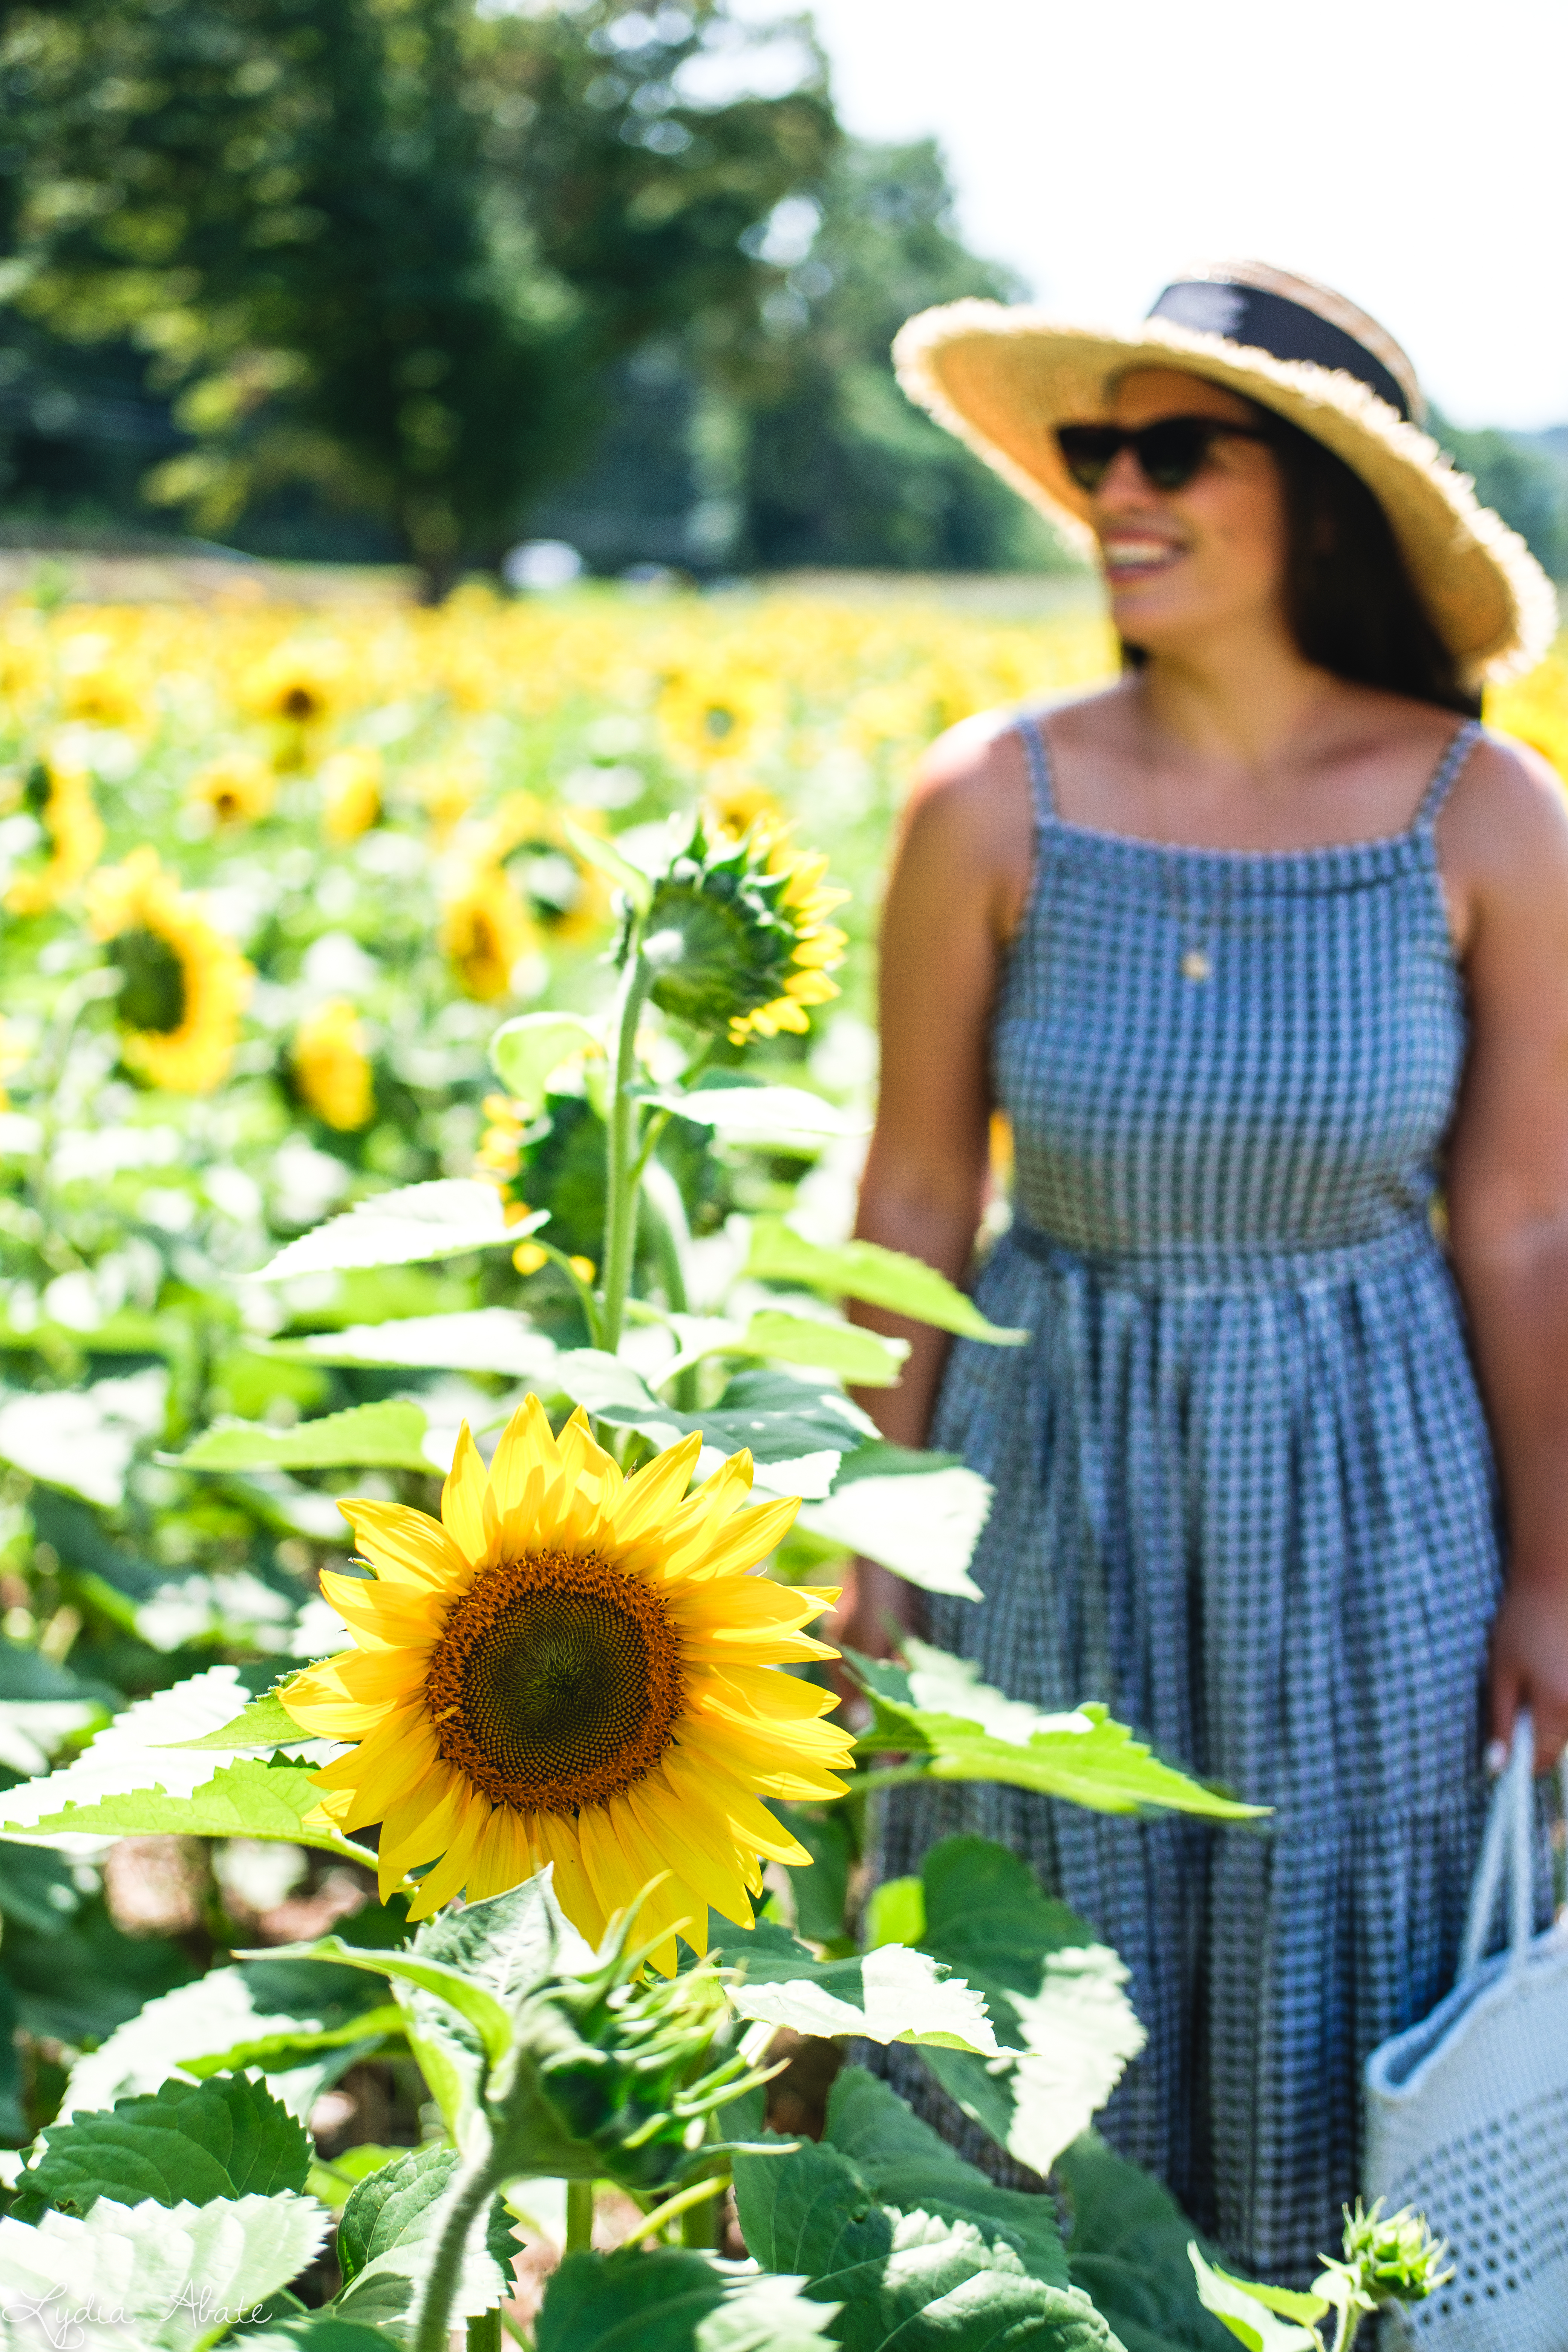 gingham maxi dress, straw hat, white caned leather tote bag, sunflowers-10.jpg